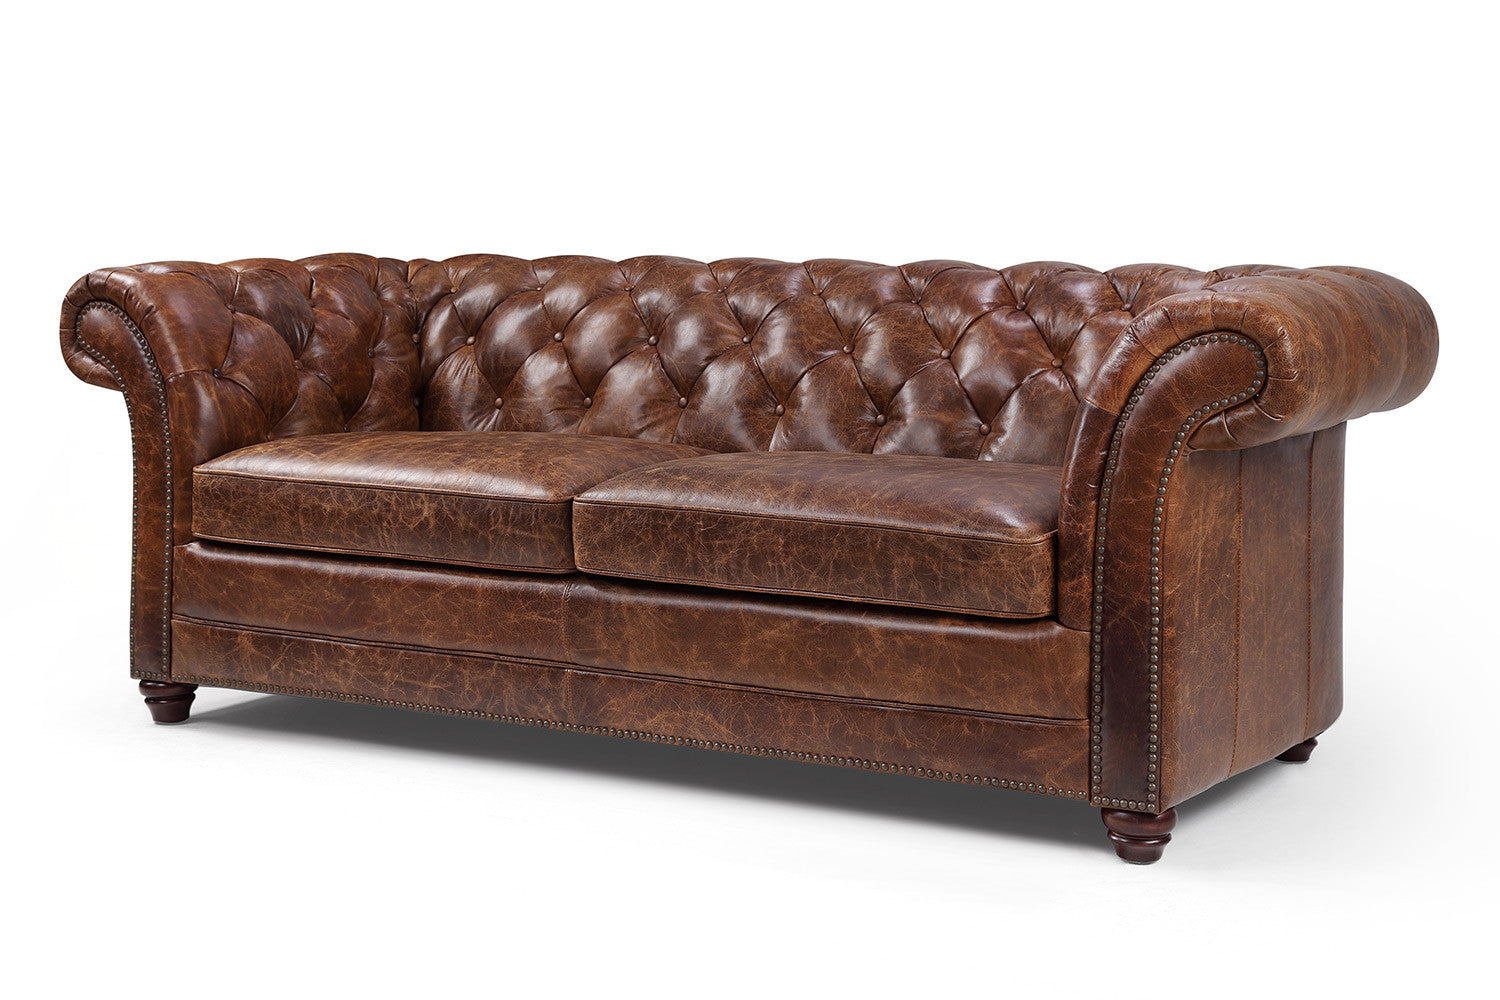 - The Westminster Chesterfield Leather Sofa Rose And Moore